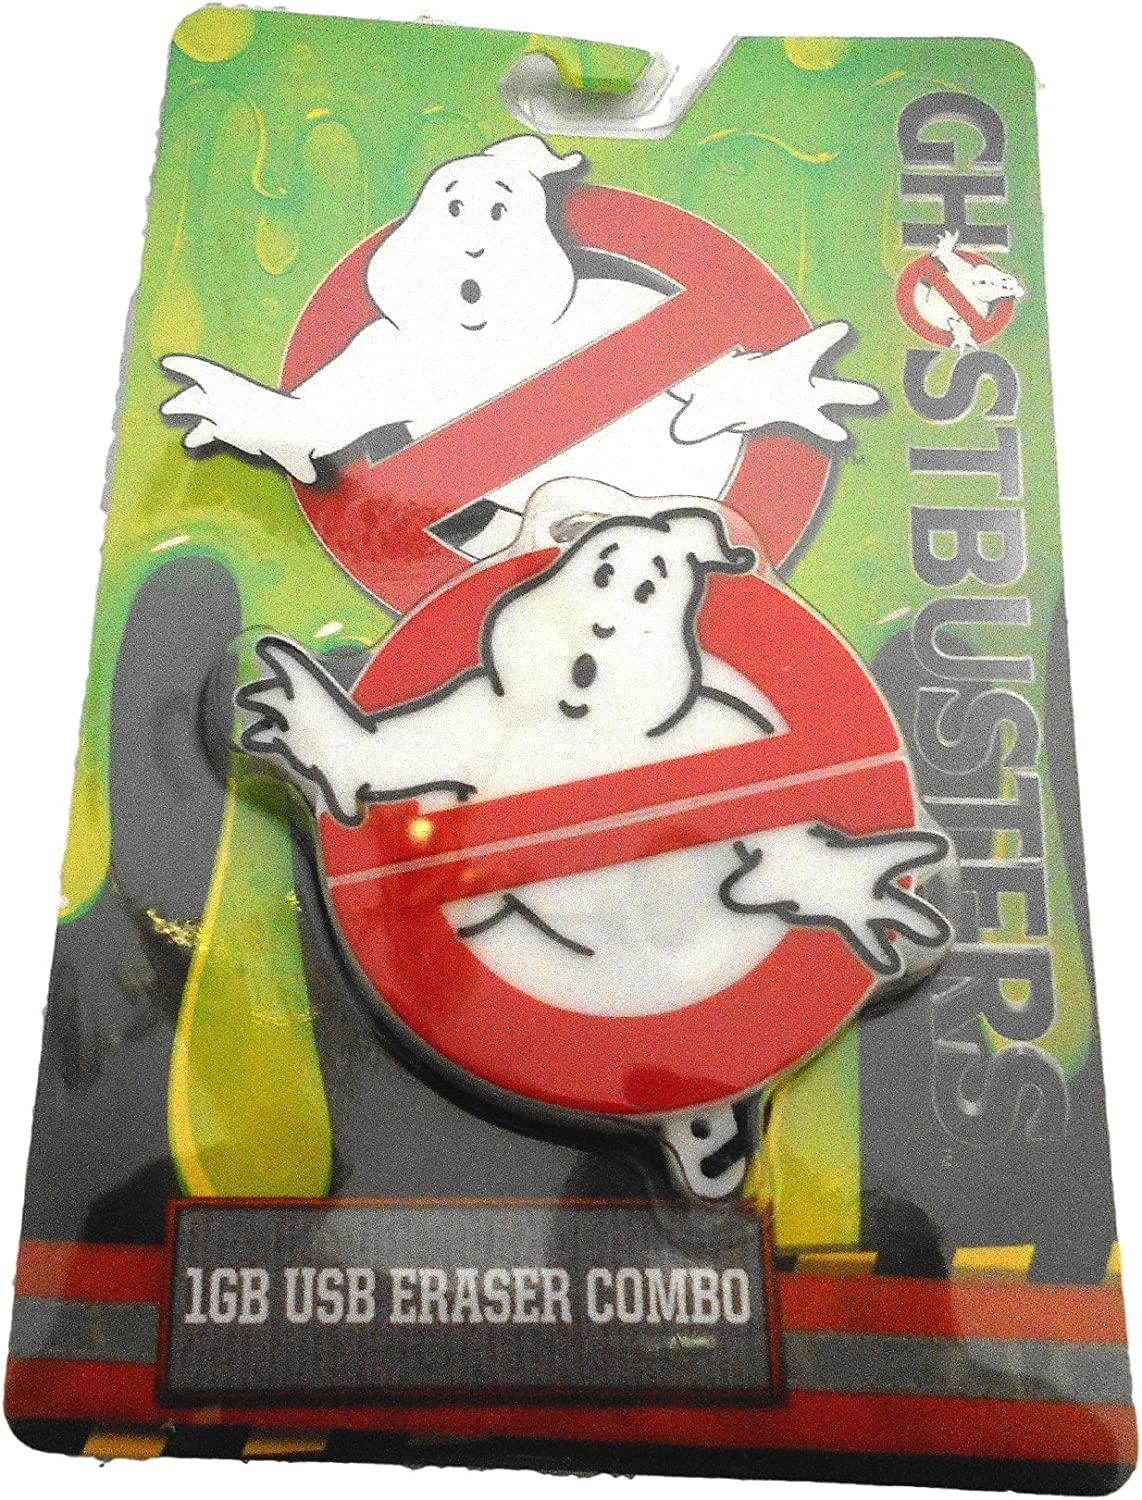 Ghostbusters USB Round Three-in-One Material Data ABS Cables Multi USB Charger CableRetractable Multiple Fasts Chargings Data line Protective Case